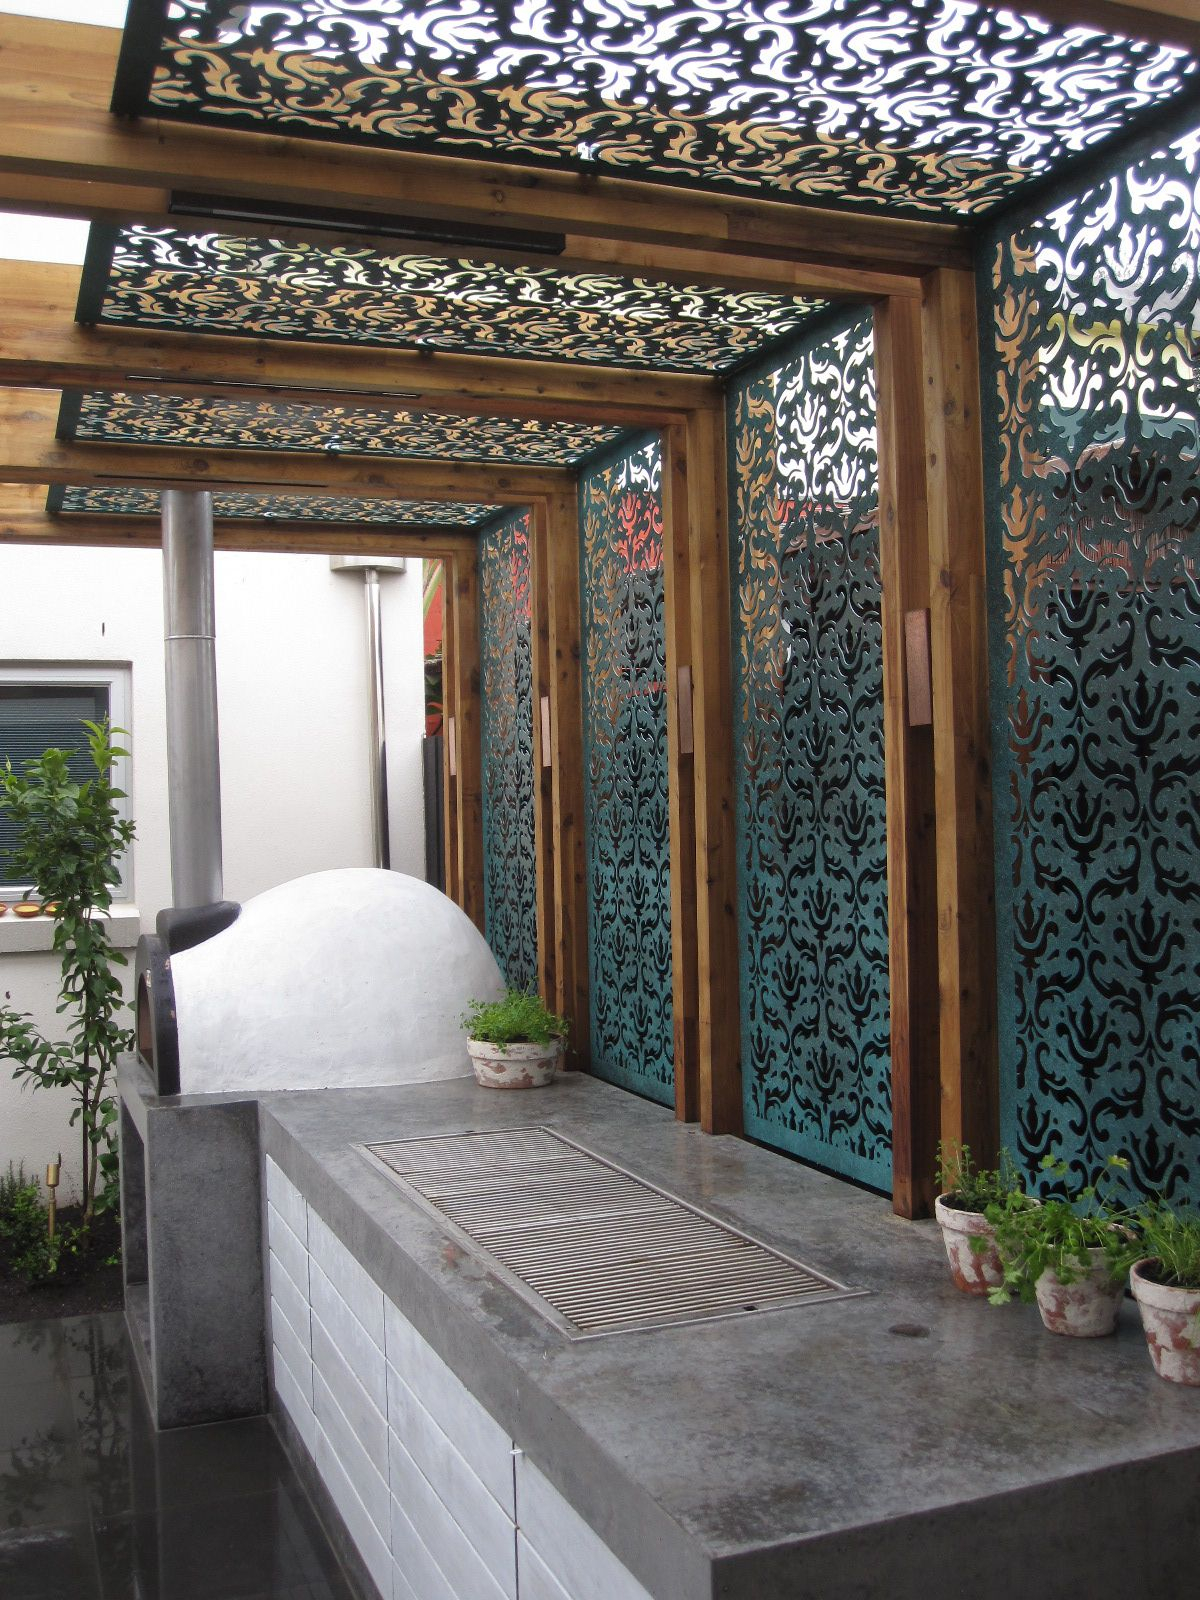 10 Best Outdoor Privacy Screen Ideas For Your Backyard Outdoor with Backyard Screen Ideas